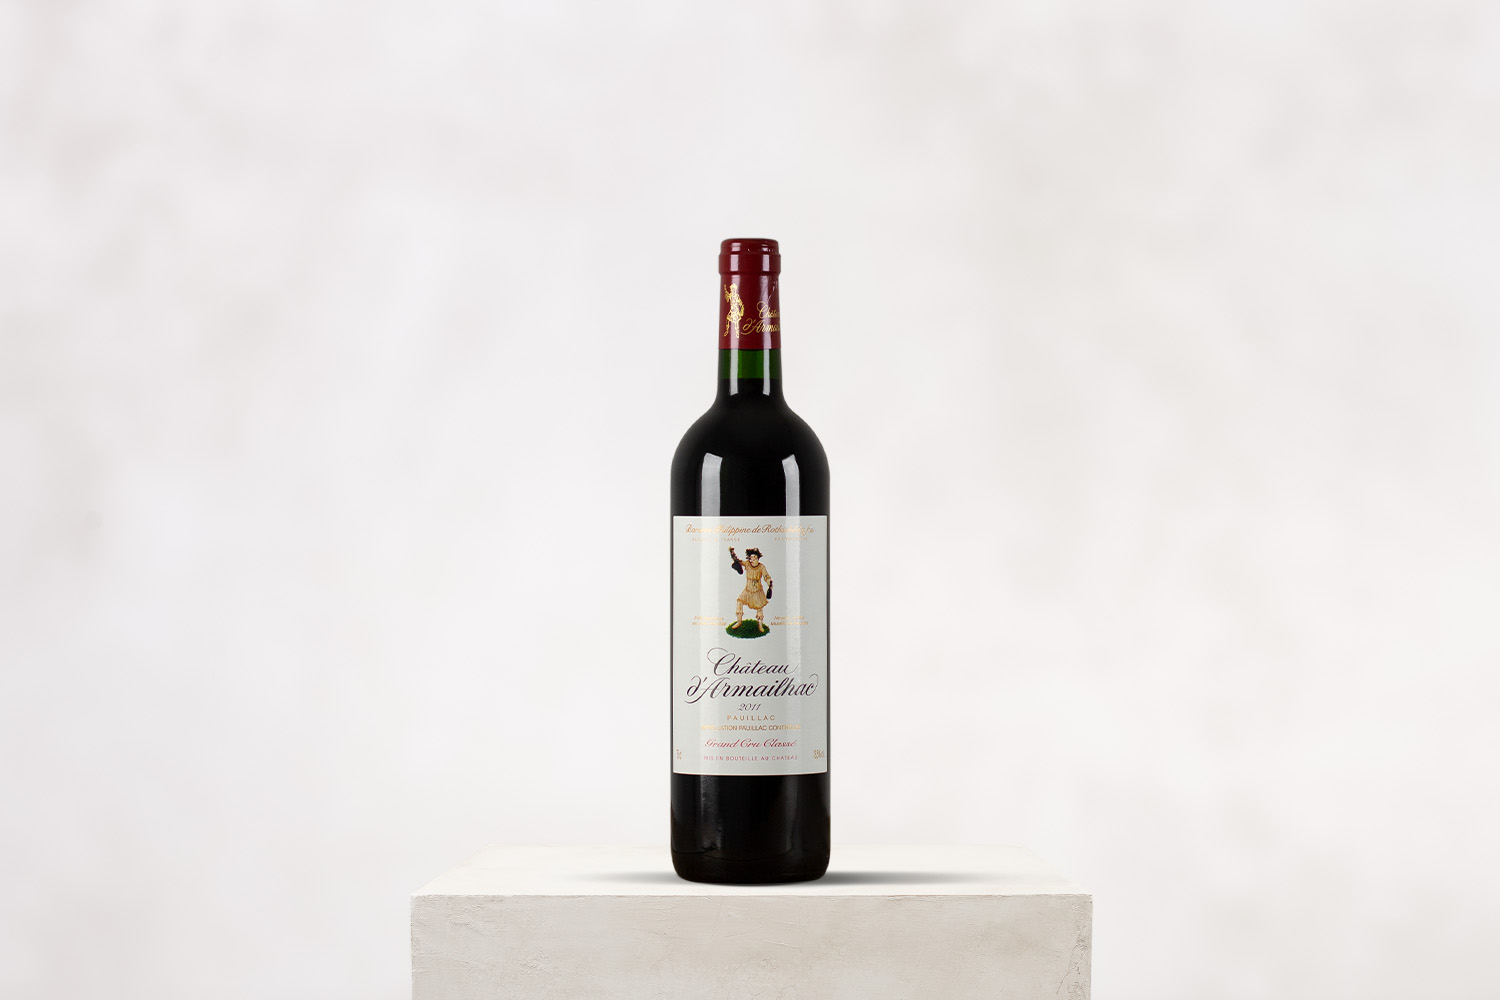 Chateau d'Armailhac, Pauillac Grand Vin Bordeaux, France 2011 - SommSelect